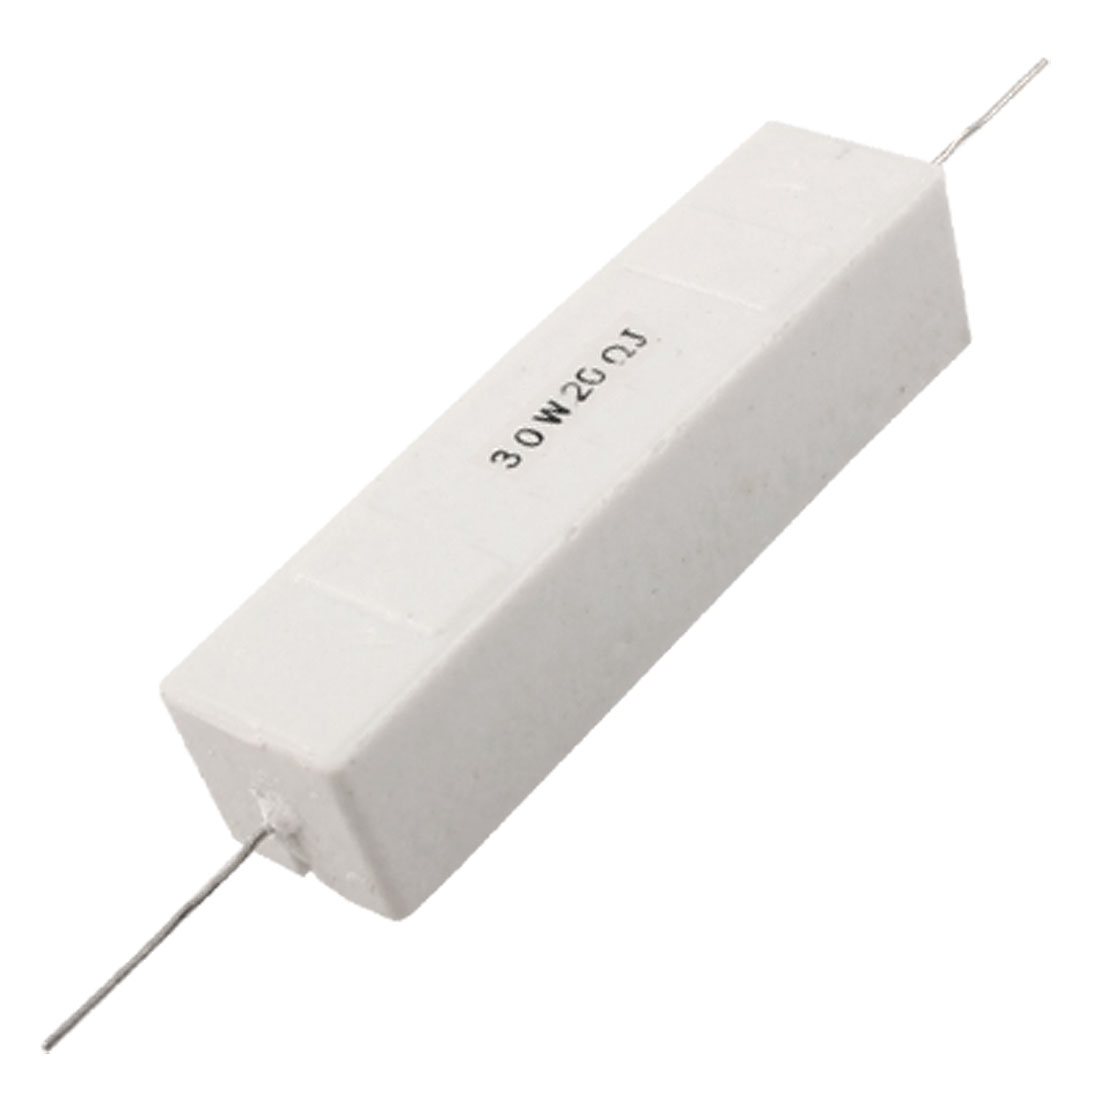 DIP Mount Ceramic Cement Resistor 20 Ohm 30W Watt 20 Ohm